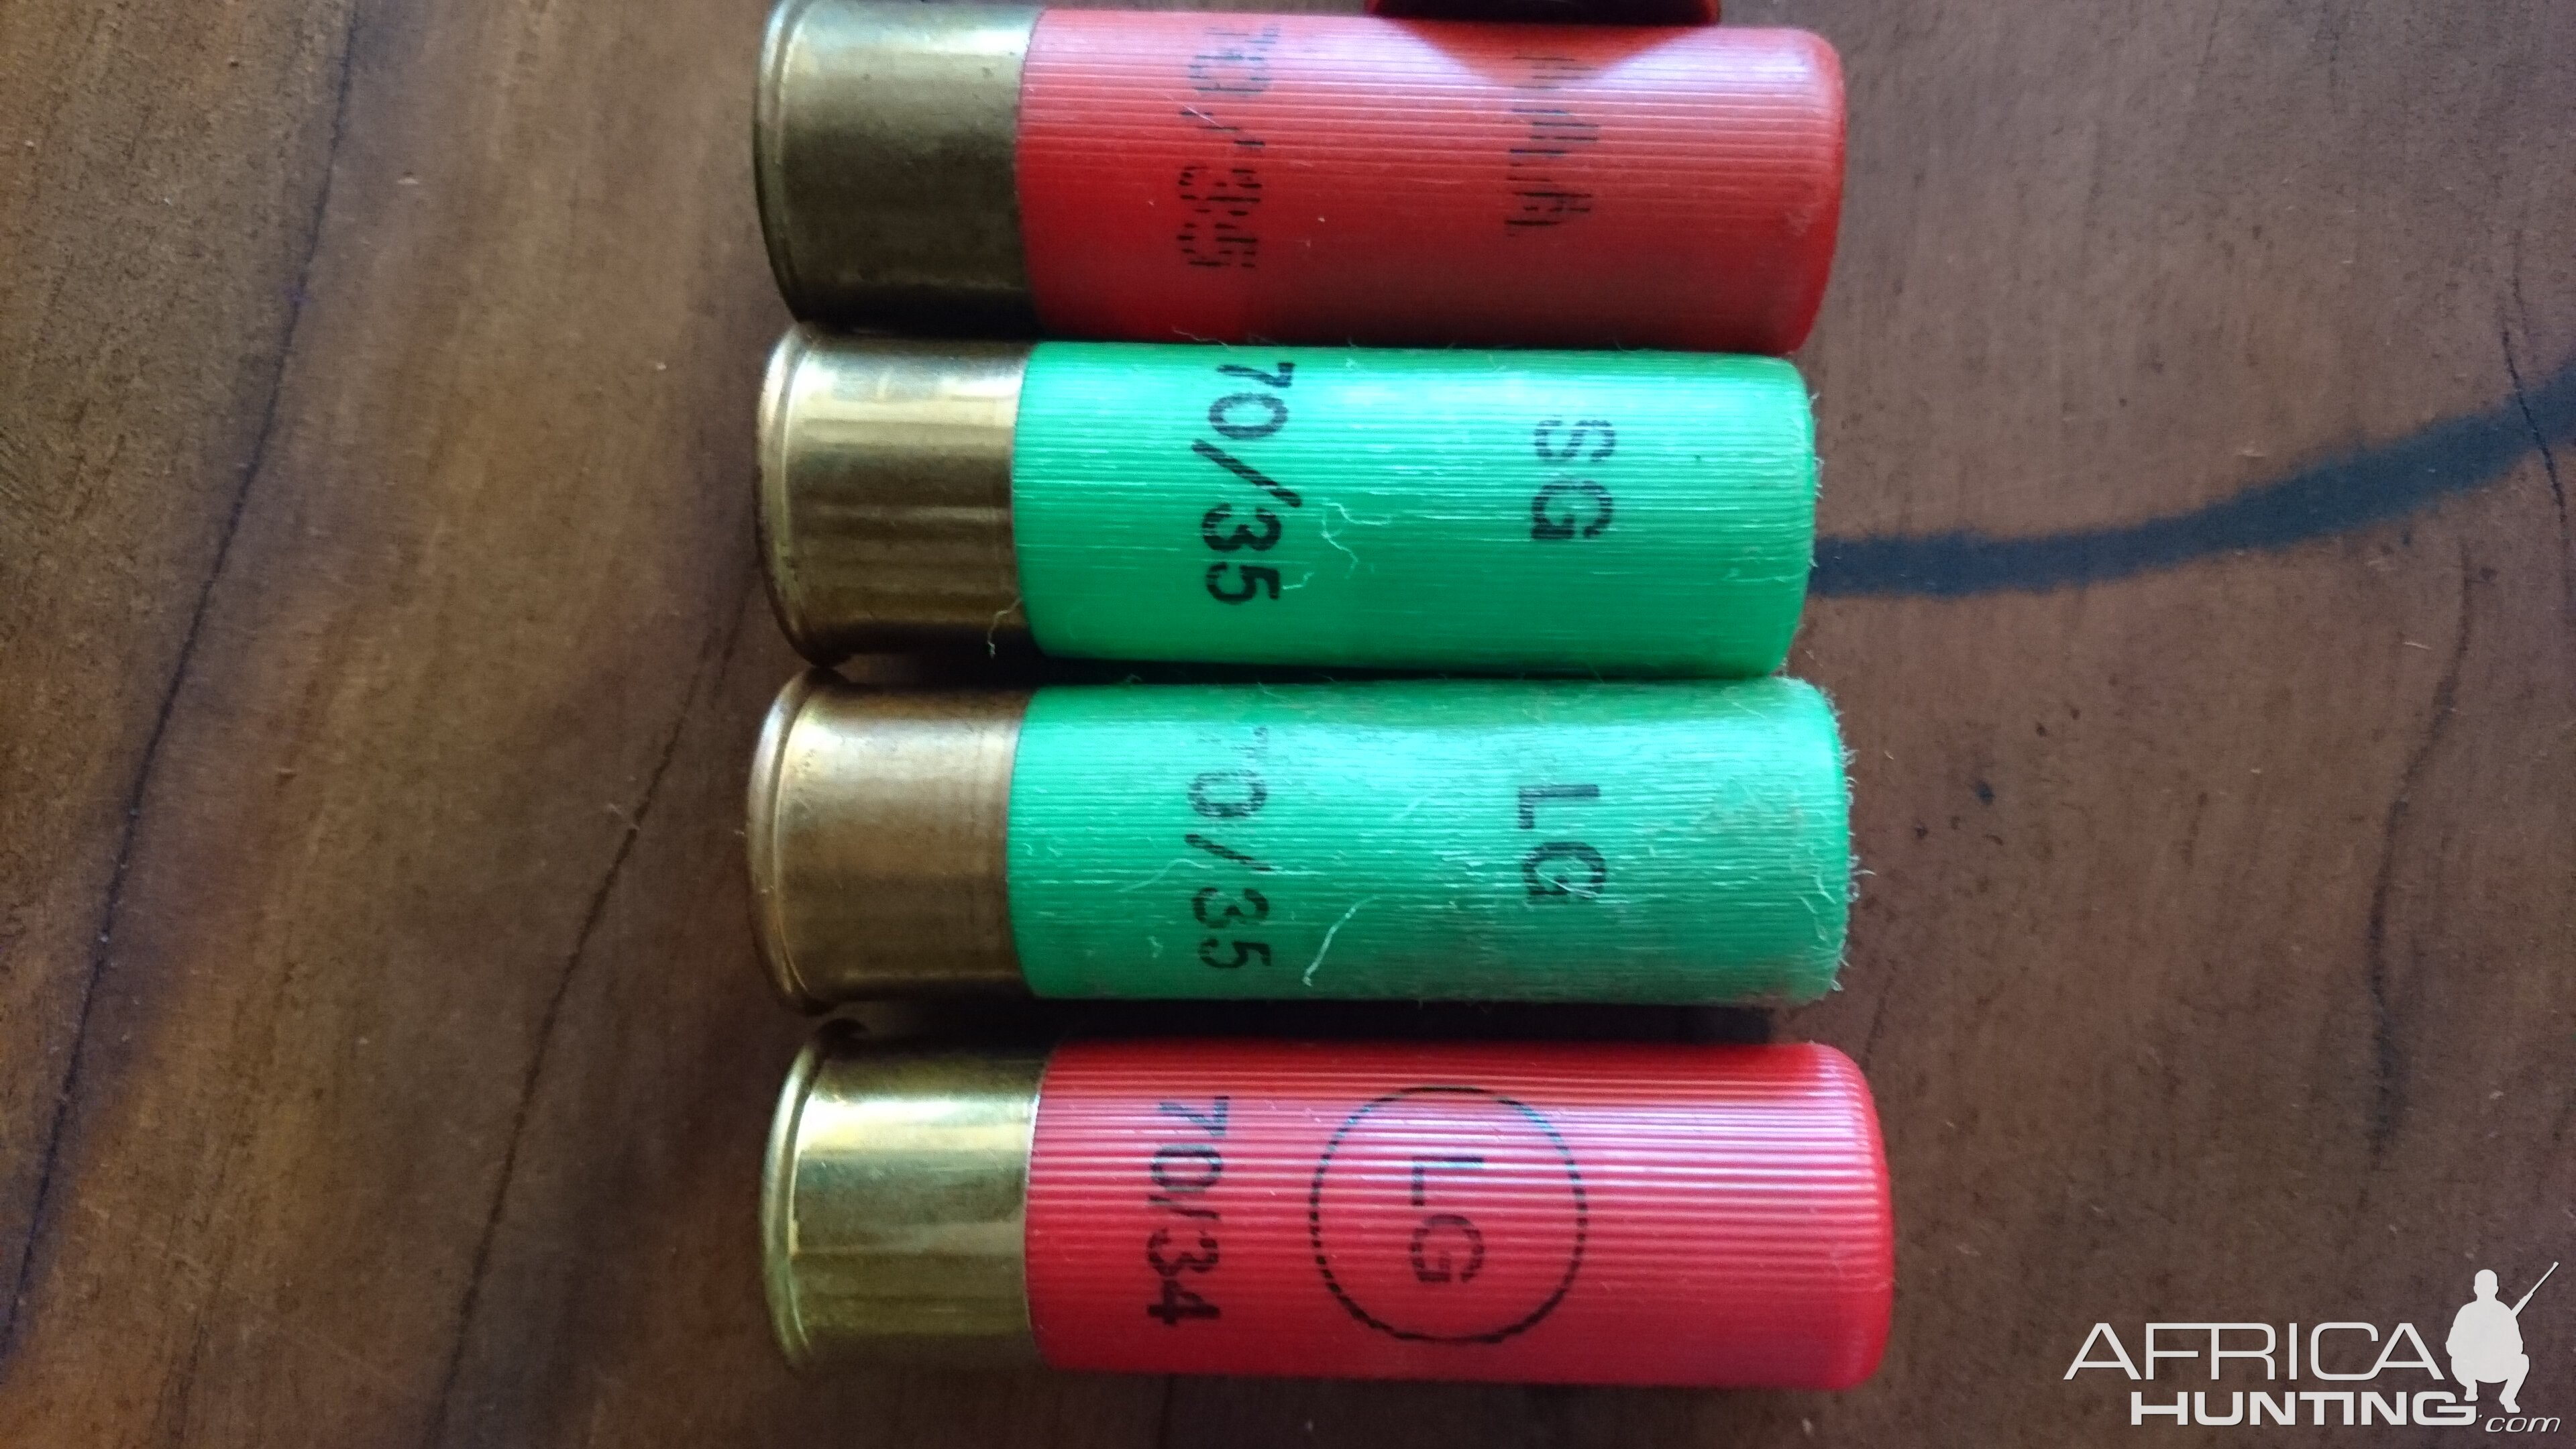 12ga Cartridges